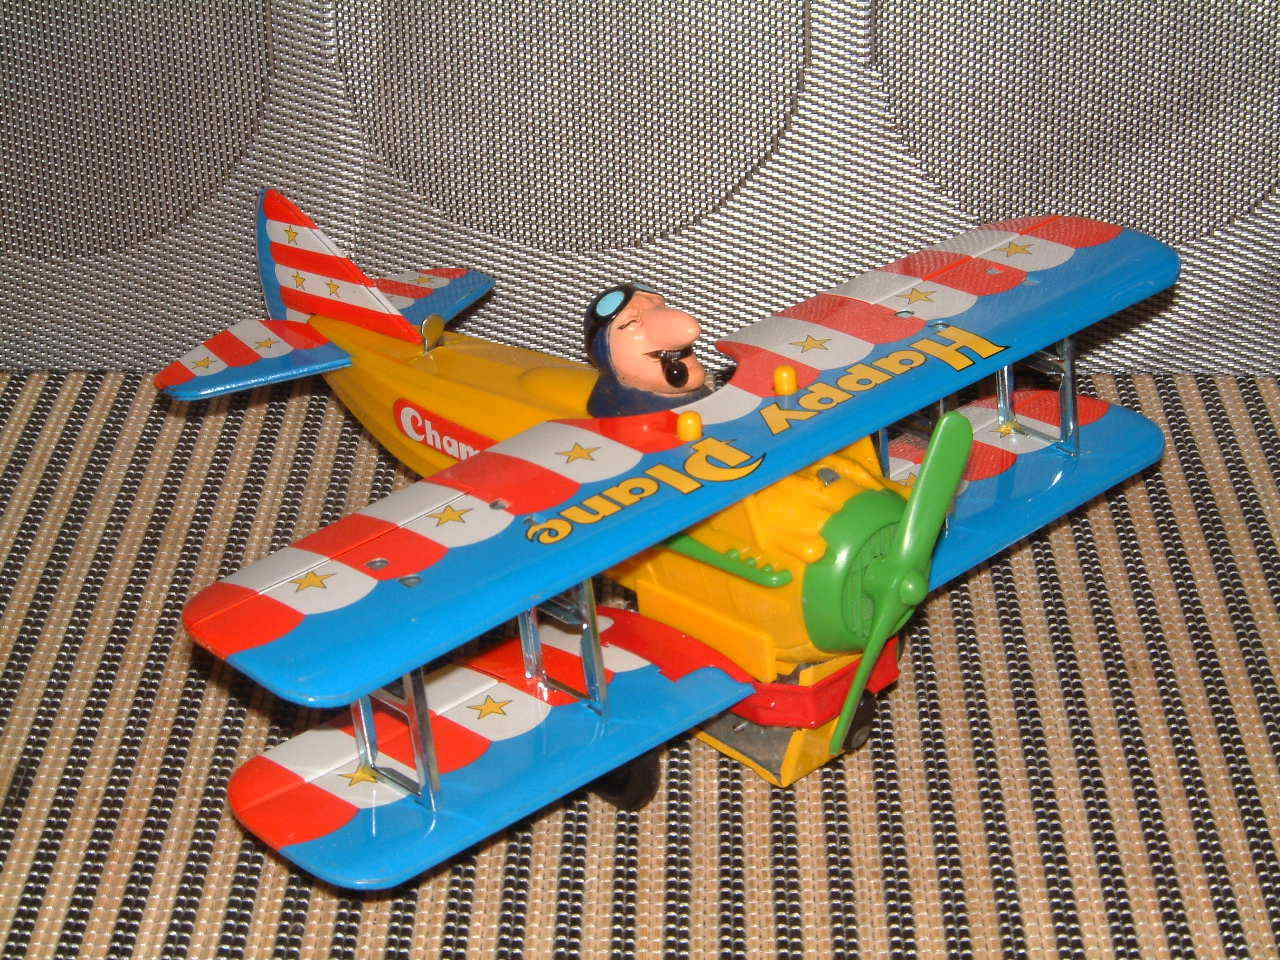 TPS VINTAGE BATTERY OPERATED HAPPY PLANE PERFECTLY PERFECTLY PERFECTLY WORKING W ORIGINAL BOX T.P.S. 0b39e5